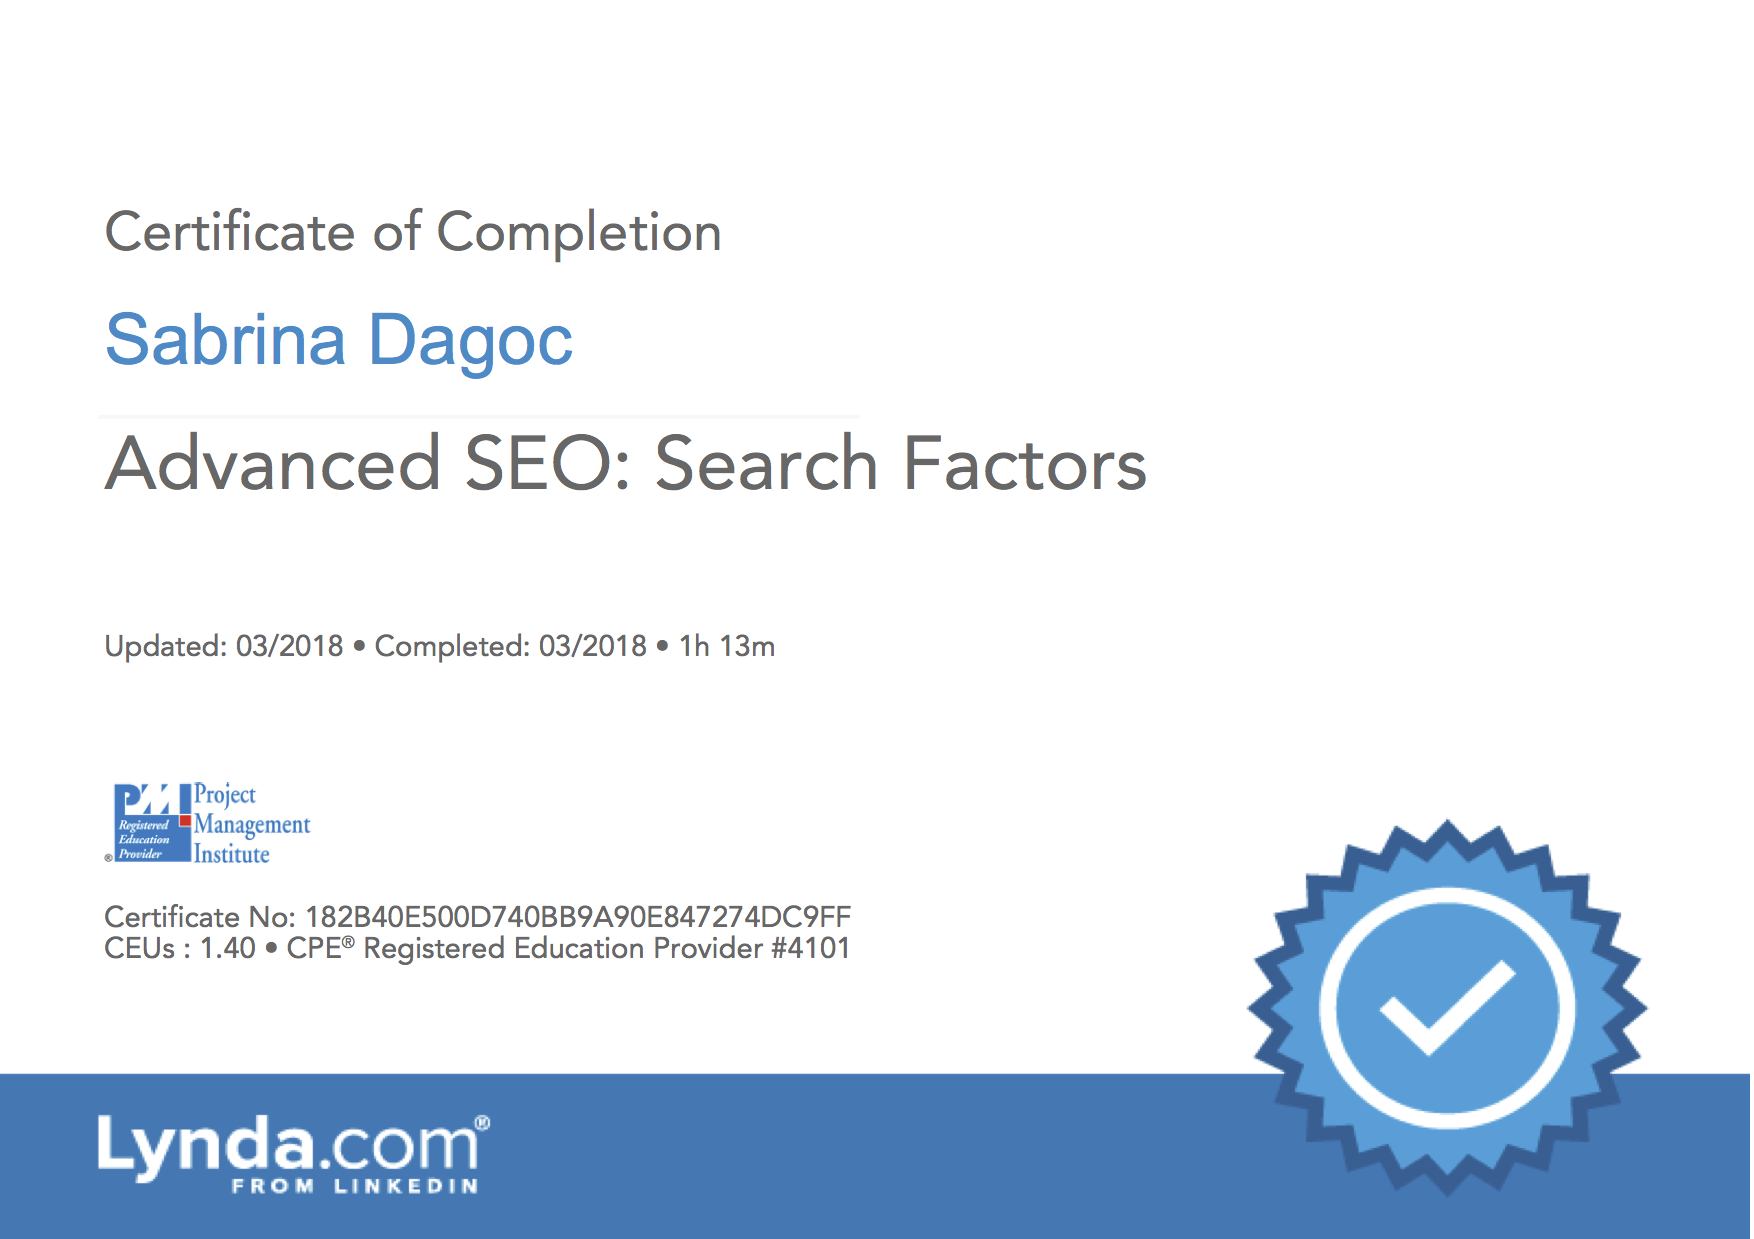 AdvancedSEO_SearchFactors_CertificateOfCompletion.png